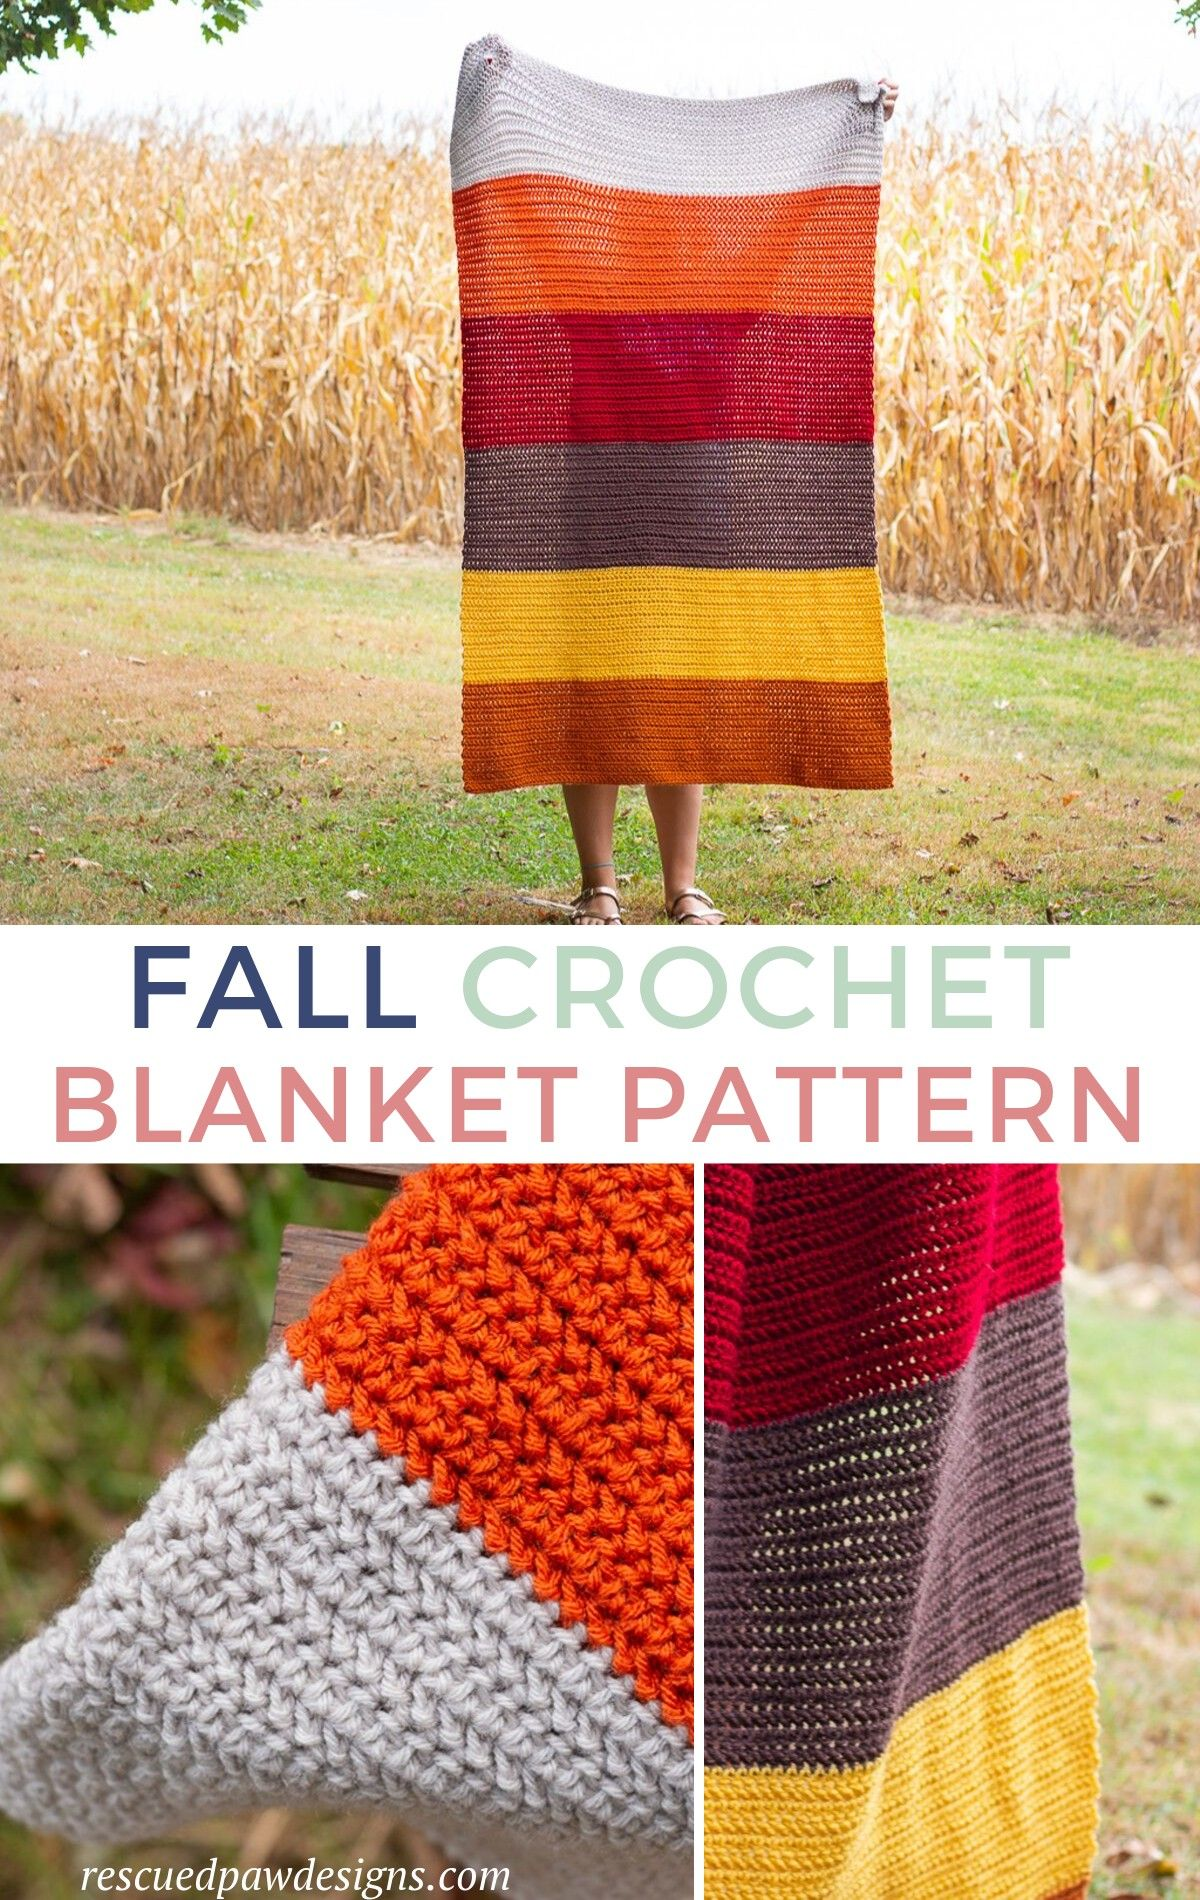 Herringbone Half Double Crochet Blanket Easycrochet Com Fall Crochet Patterns Crochet Blanket Patterns Crochet Patterns